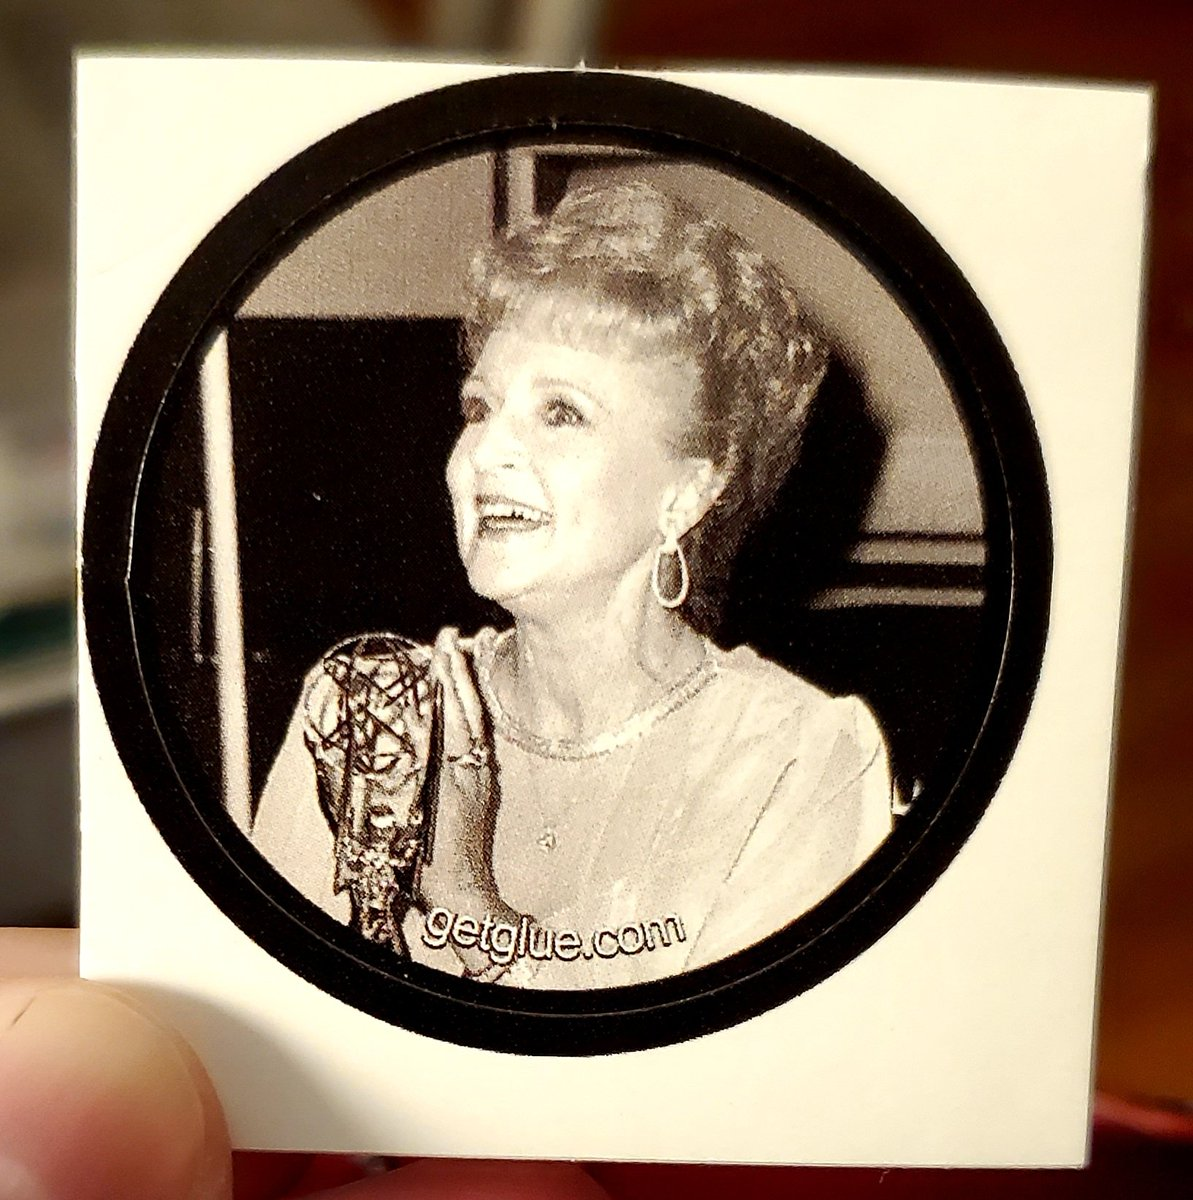 Anyone remember #getglue ? It was  a website were you earned free stickers from TV and movies. Went through my old collection and found this cute #BettyWhite sticker. Complete #boardwalkempire season 4, partial #trueblood season 5 (Where's Pam?) #WarmBodies Nicholas Hoult sticker